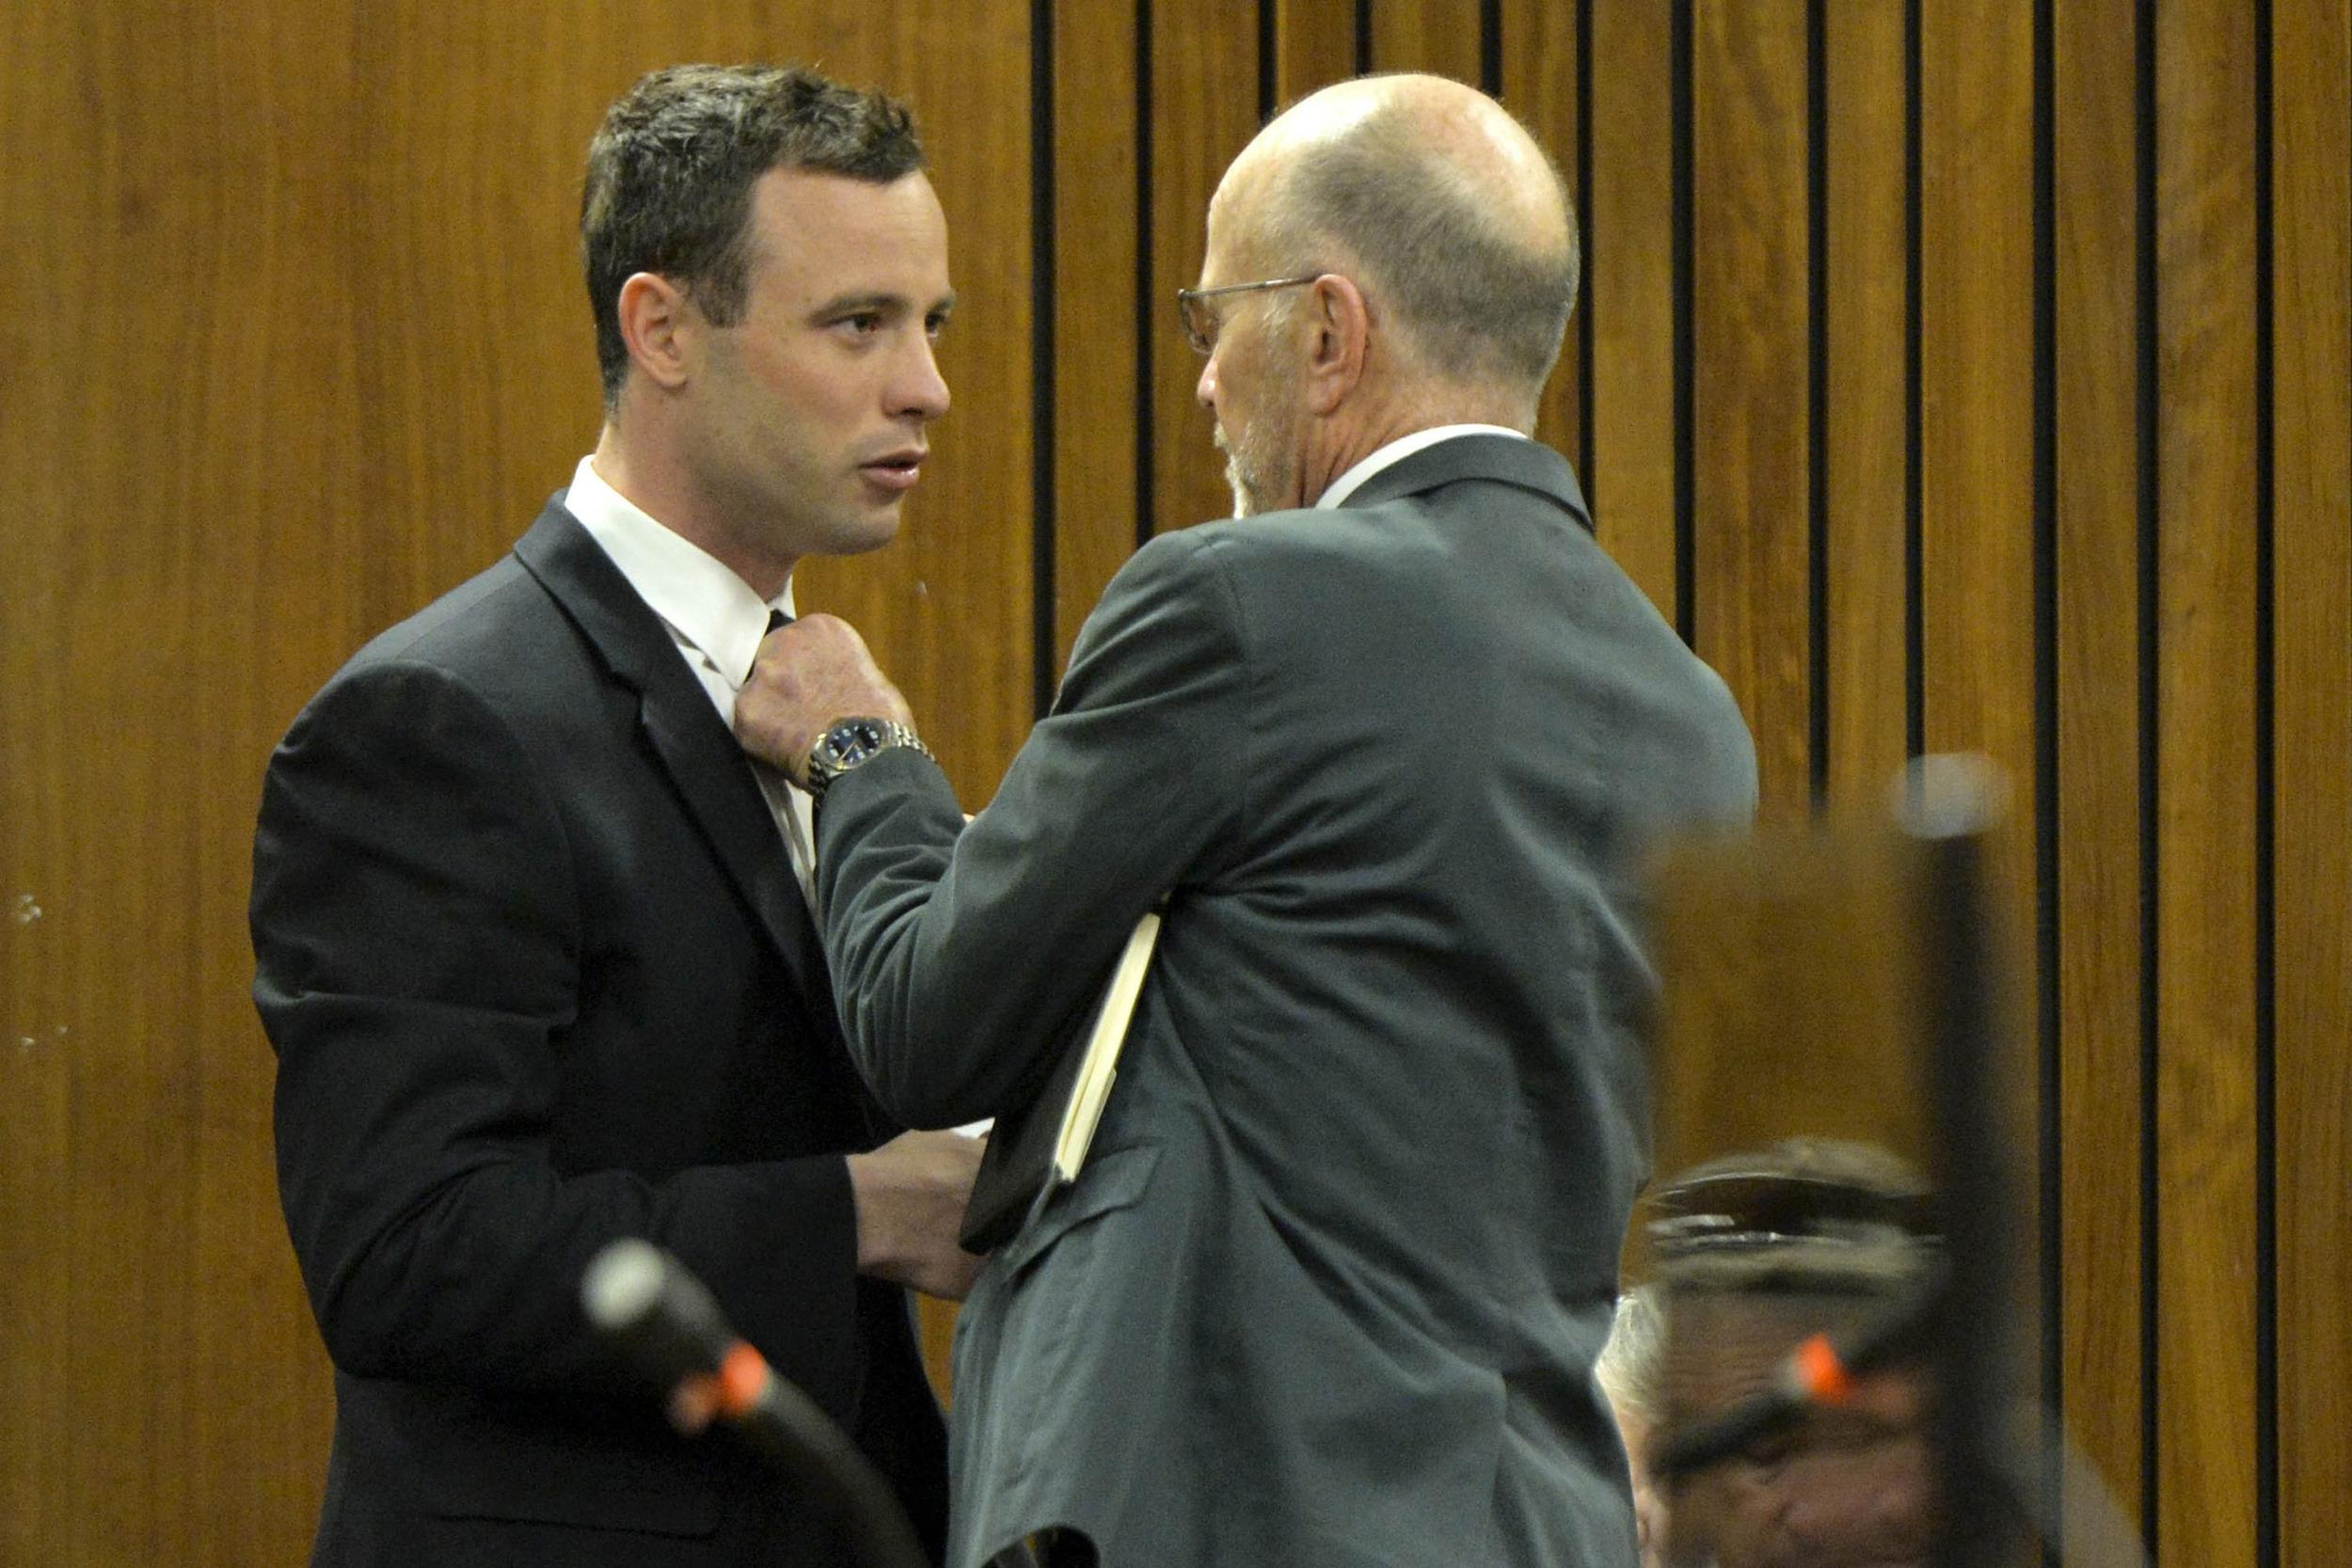 Image: Oscar Pistorius and his uncle on Thursday